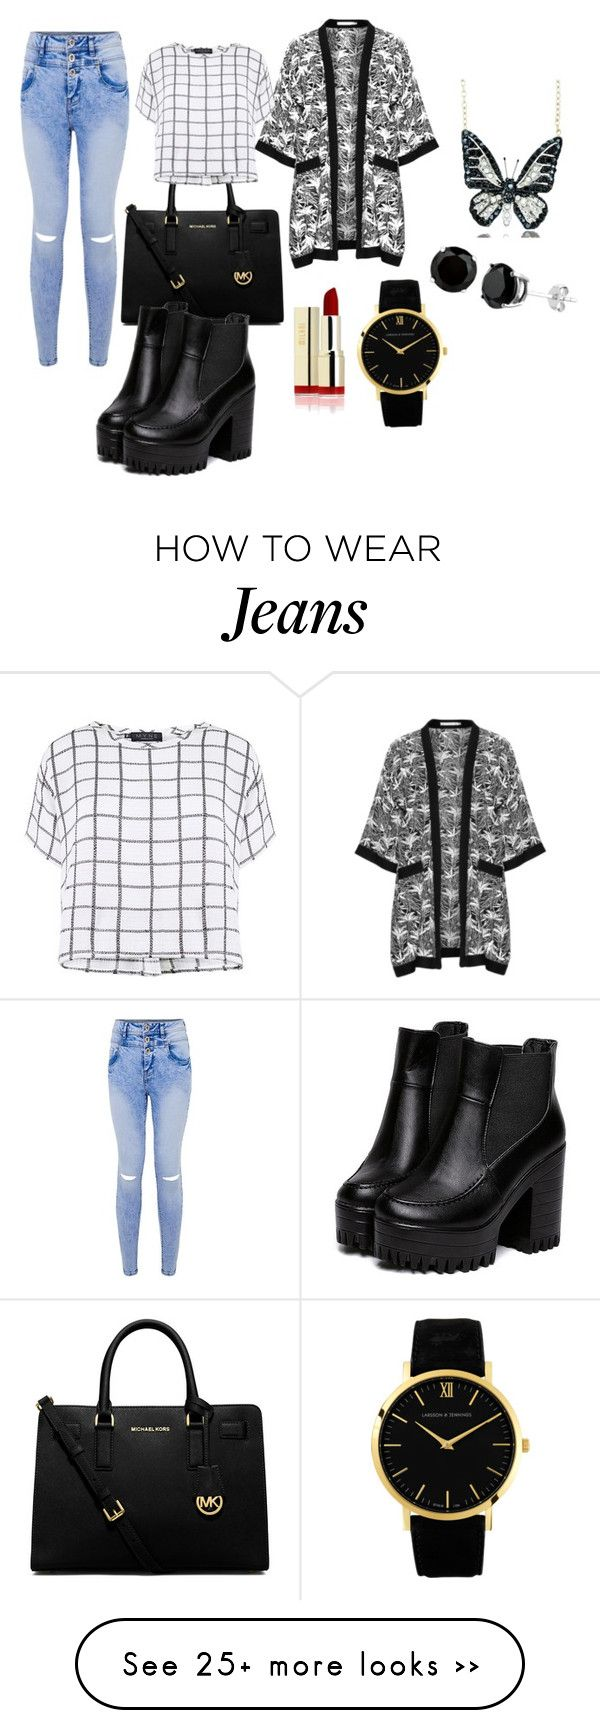 """Casual Jeans Look"" by littlemissfashionista13 on Polyvore featuring MICHAEL Michael Kors, Studio, Larsson & Jennings, Andrew Hamilton Crawford and Myne"